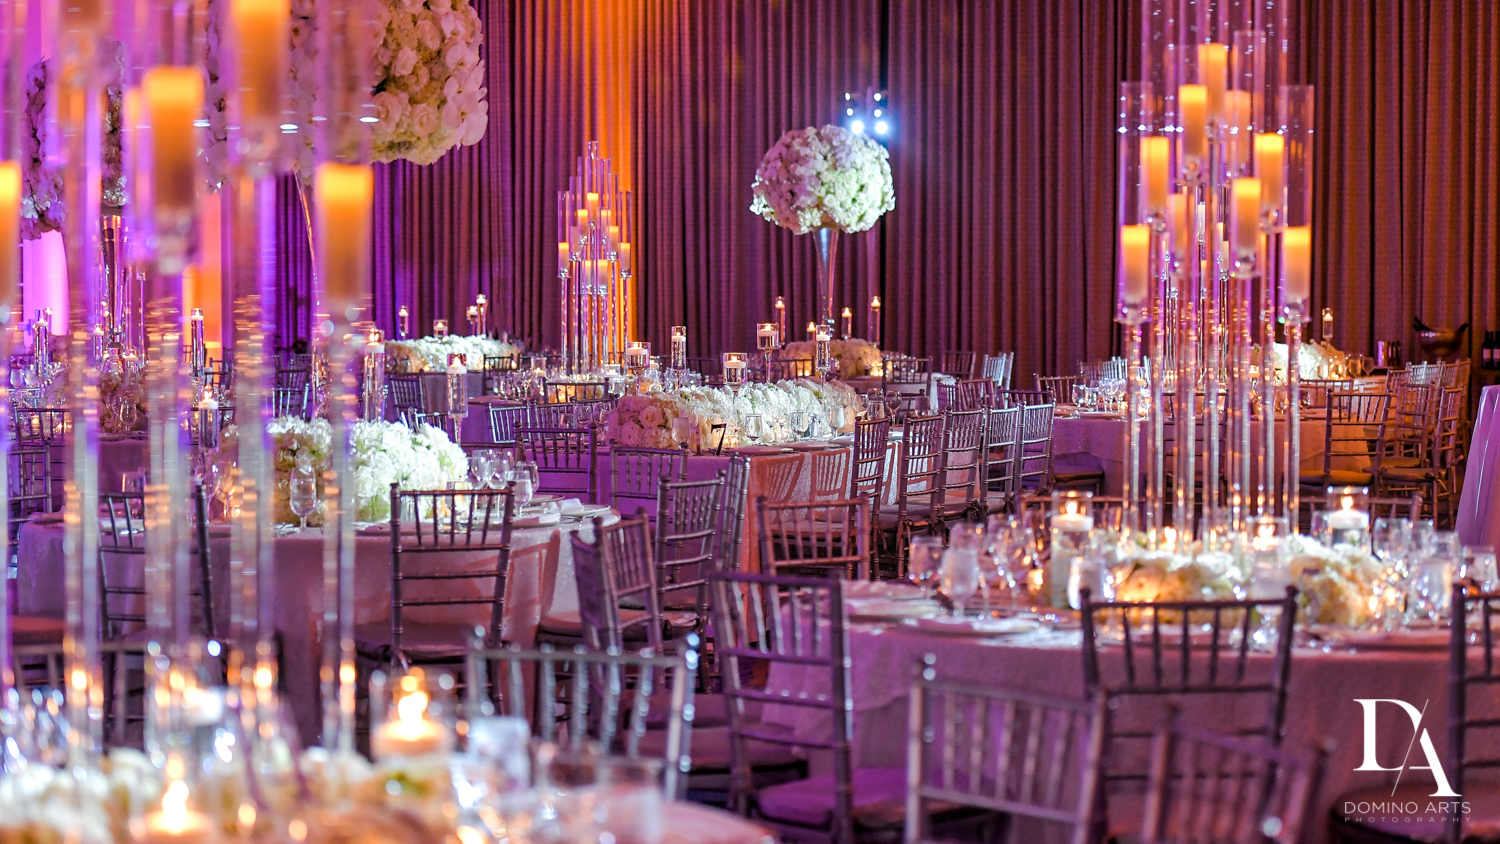 petal productions decor at A Ritz Carlton Wedding in Key Biscayne by Domino Arts Photography